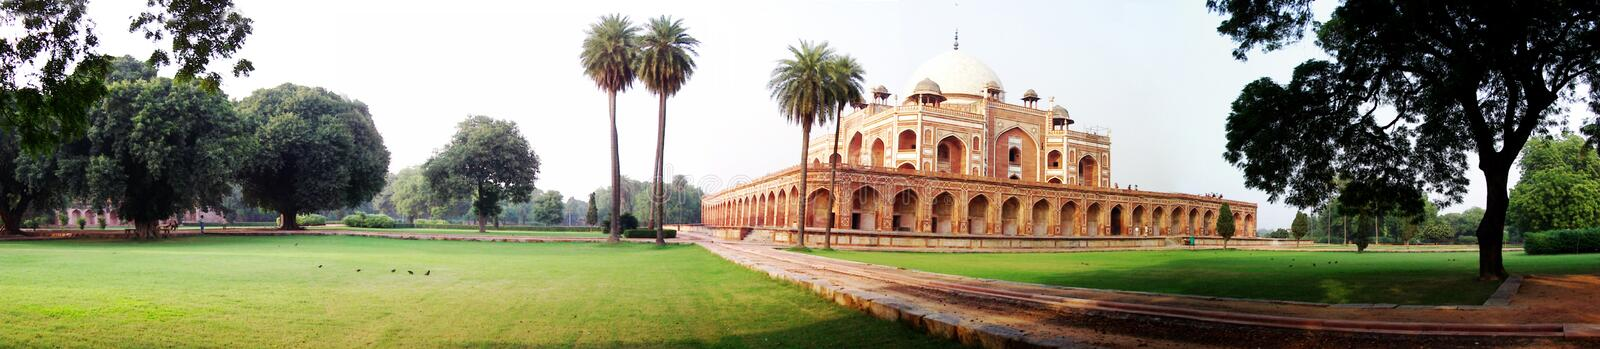 Humayun's Tomb. The tomb of Emperor Humayun in New Delhi. Restored by the Aga Khan Foundation and the ASI it is once again a popular sightseeing stop. The tomb stock photos